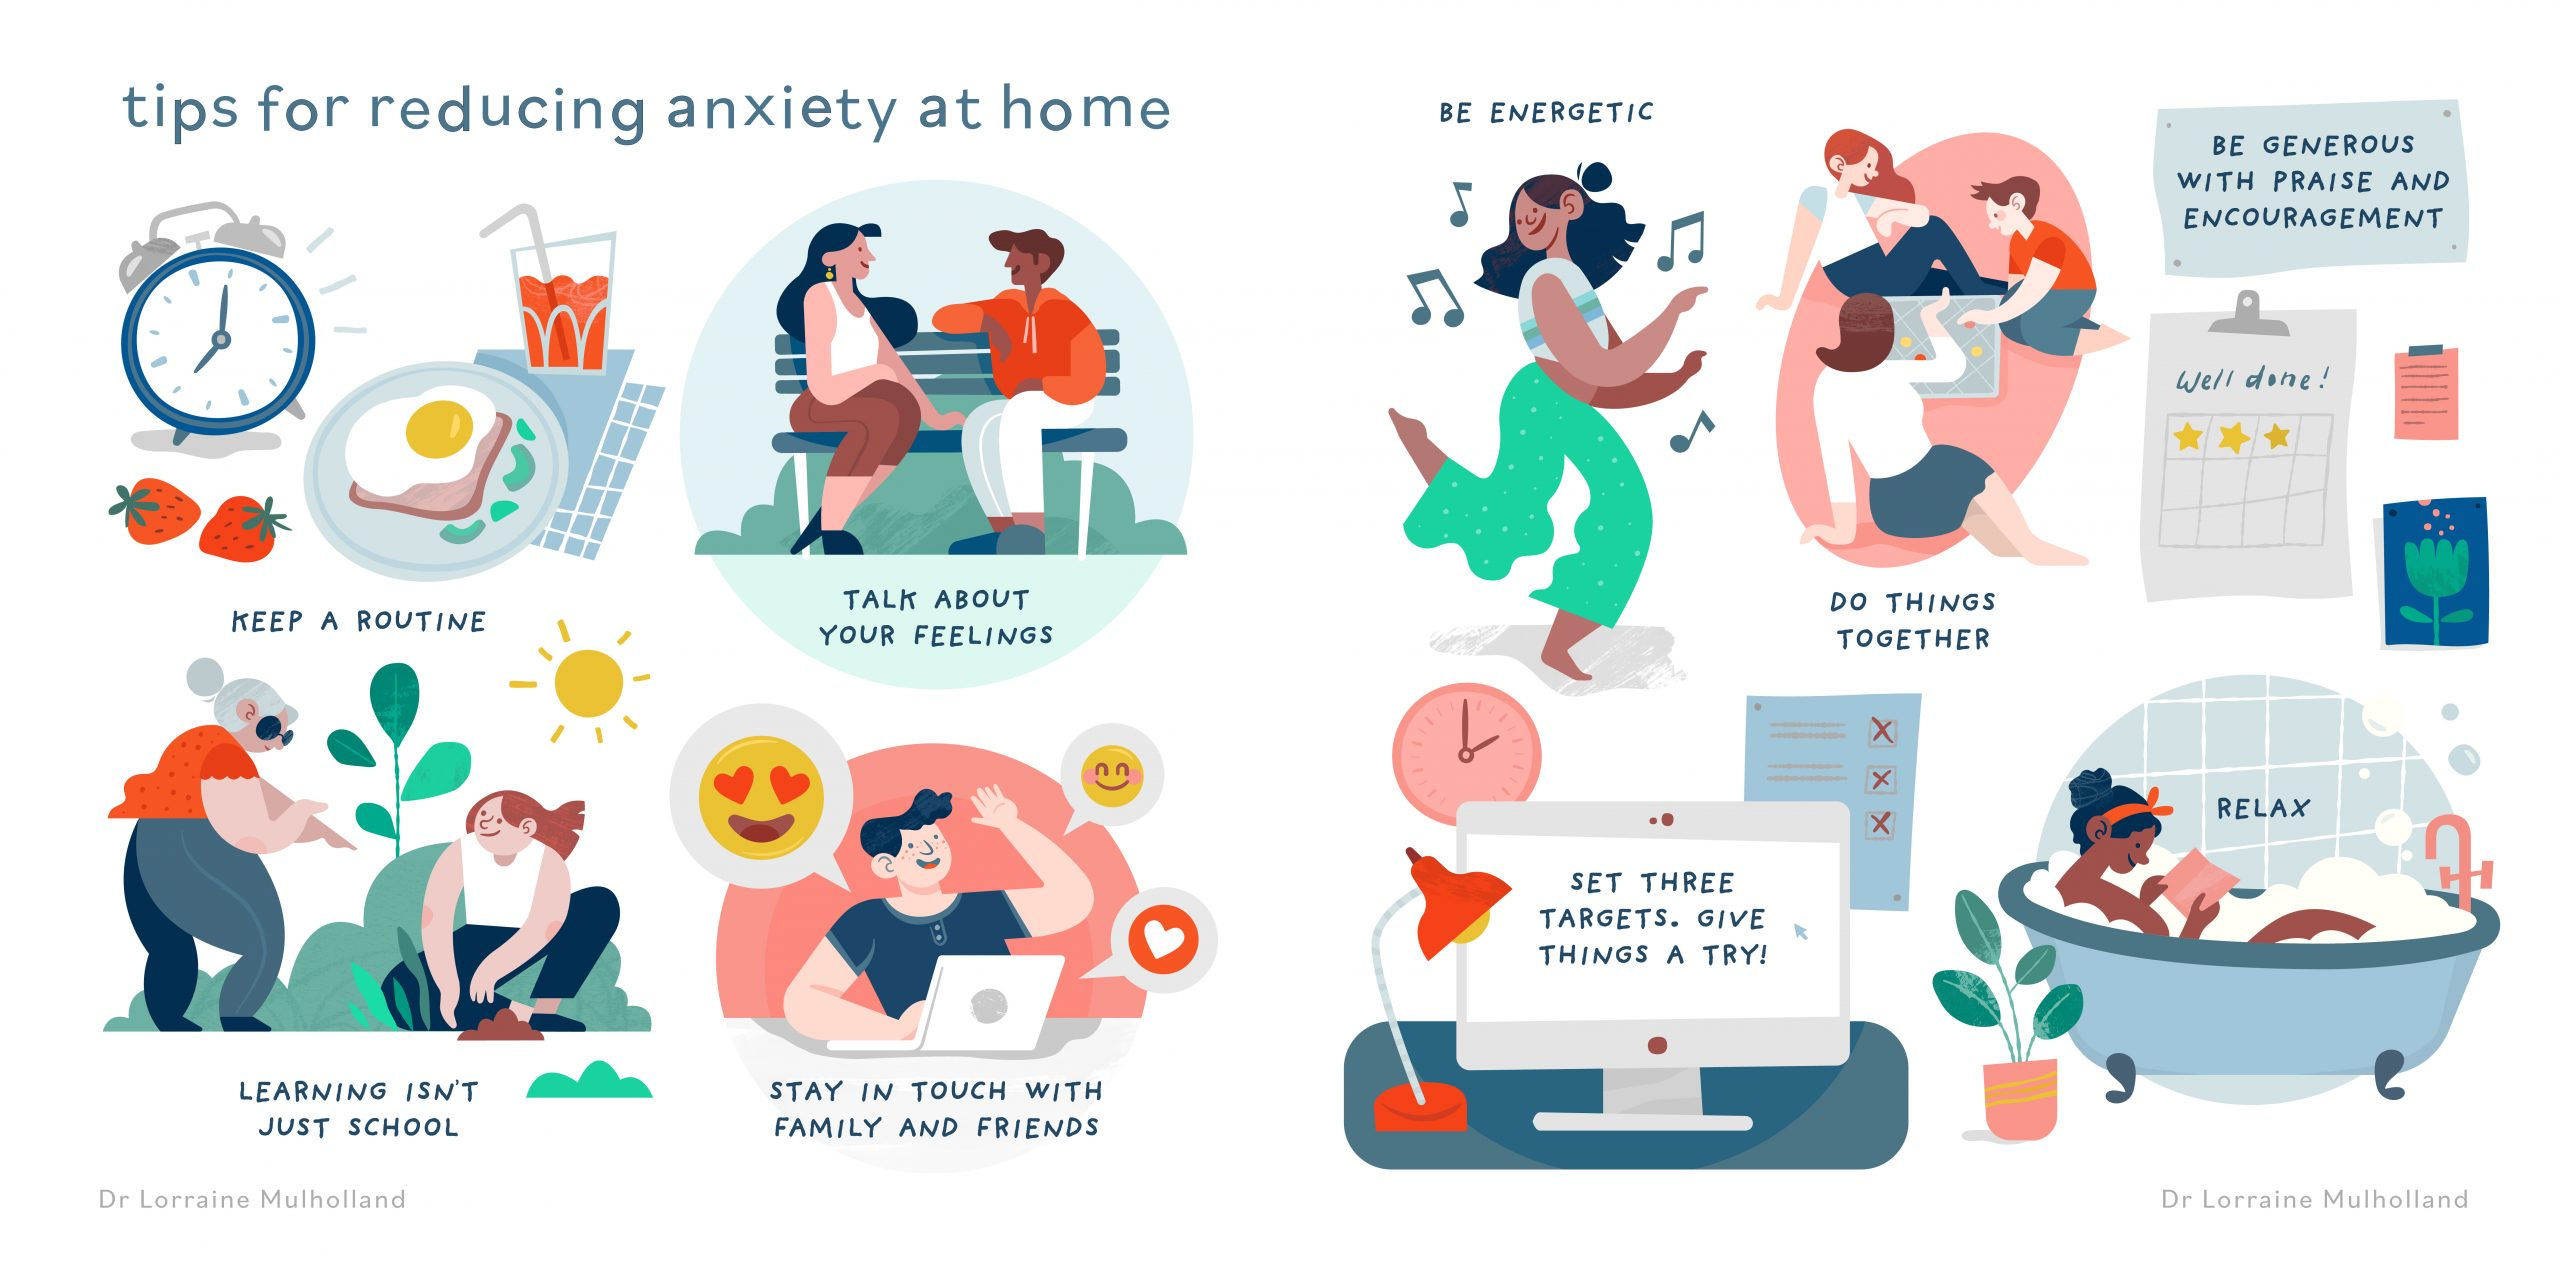 Tips for reducing anxiety at home